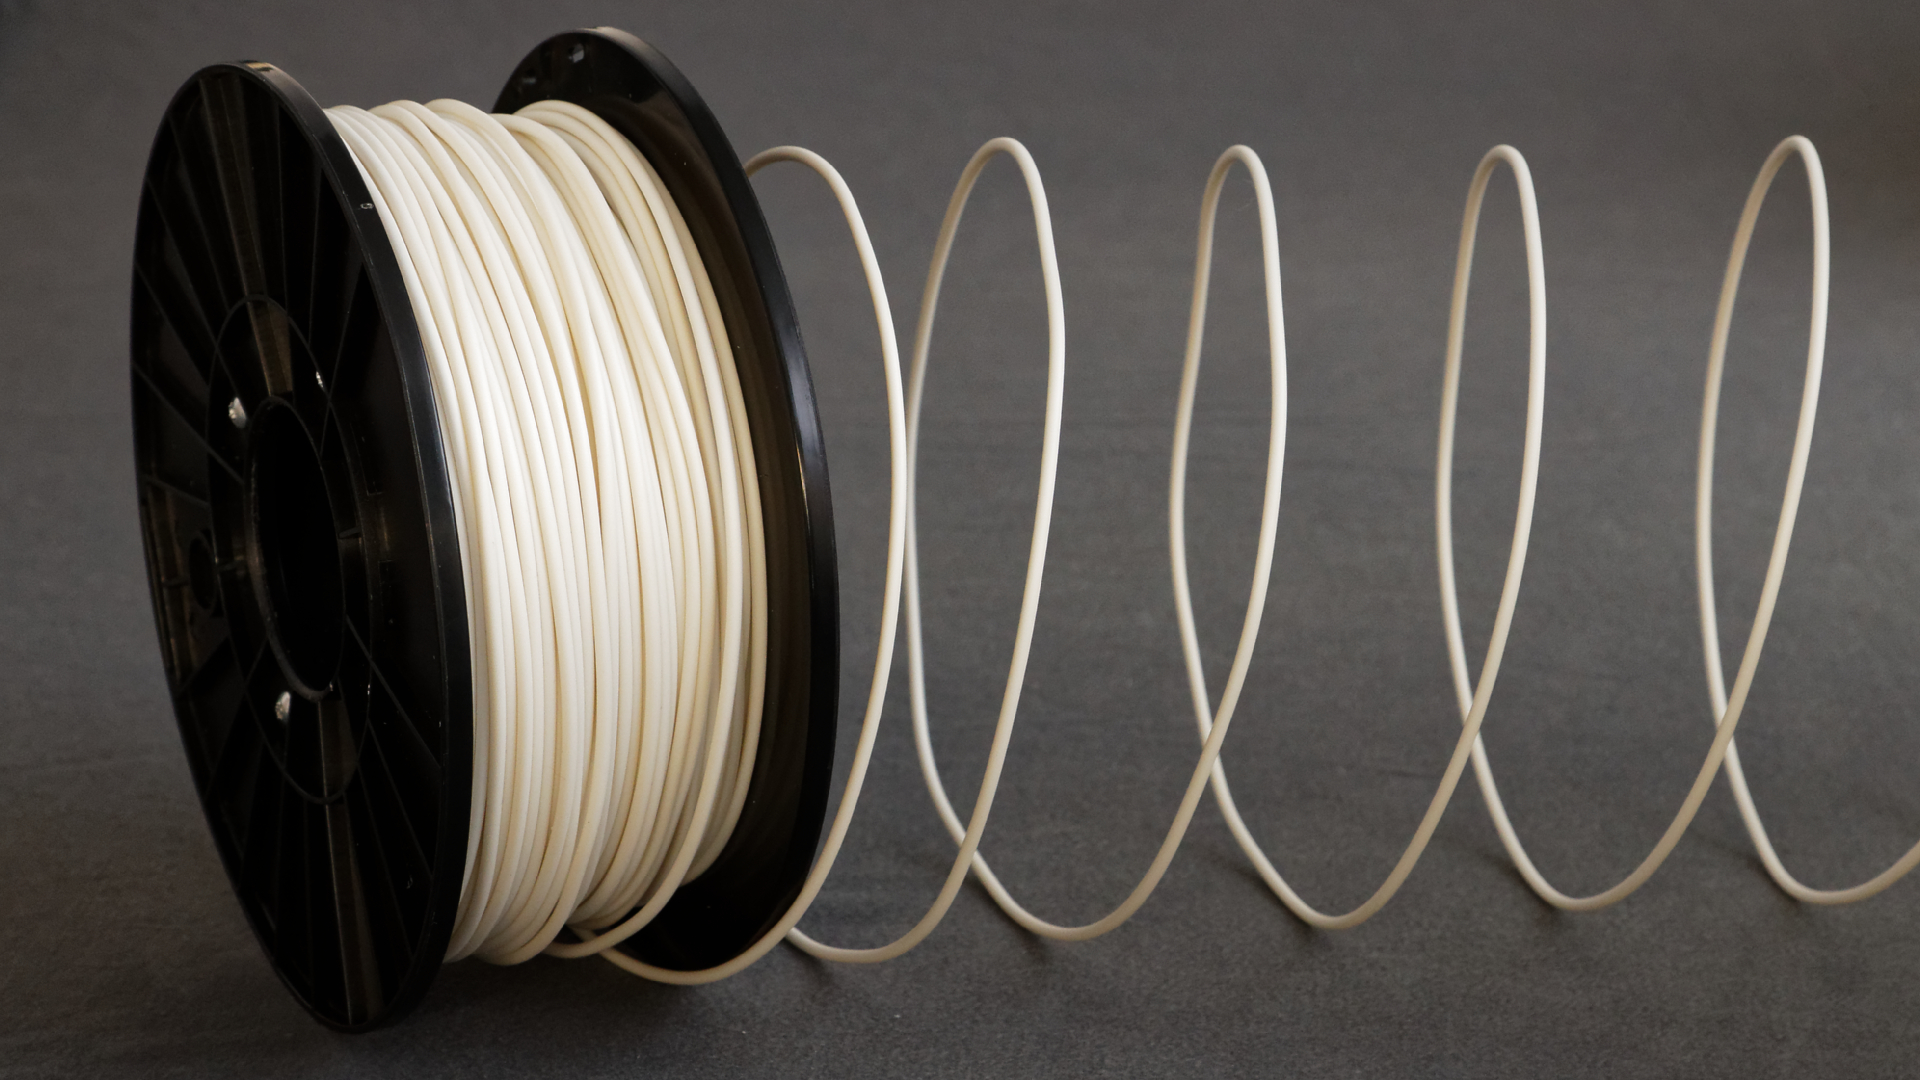 Spool of A1 Filament.